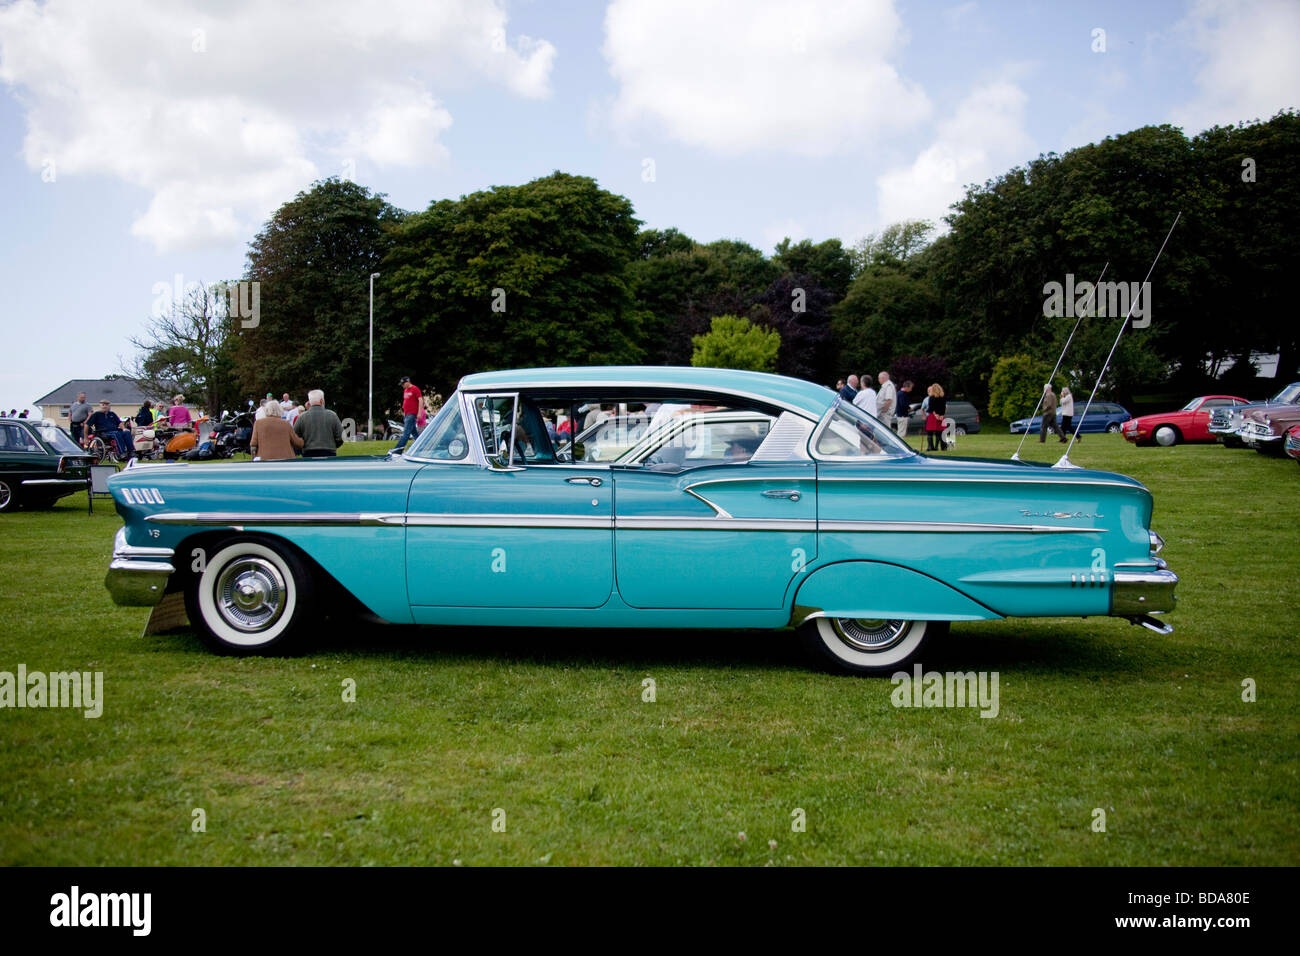 Delighted Old School Chevy Cars Contemporary - Classic Cars Ideas ...